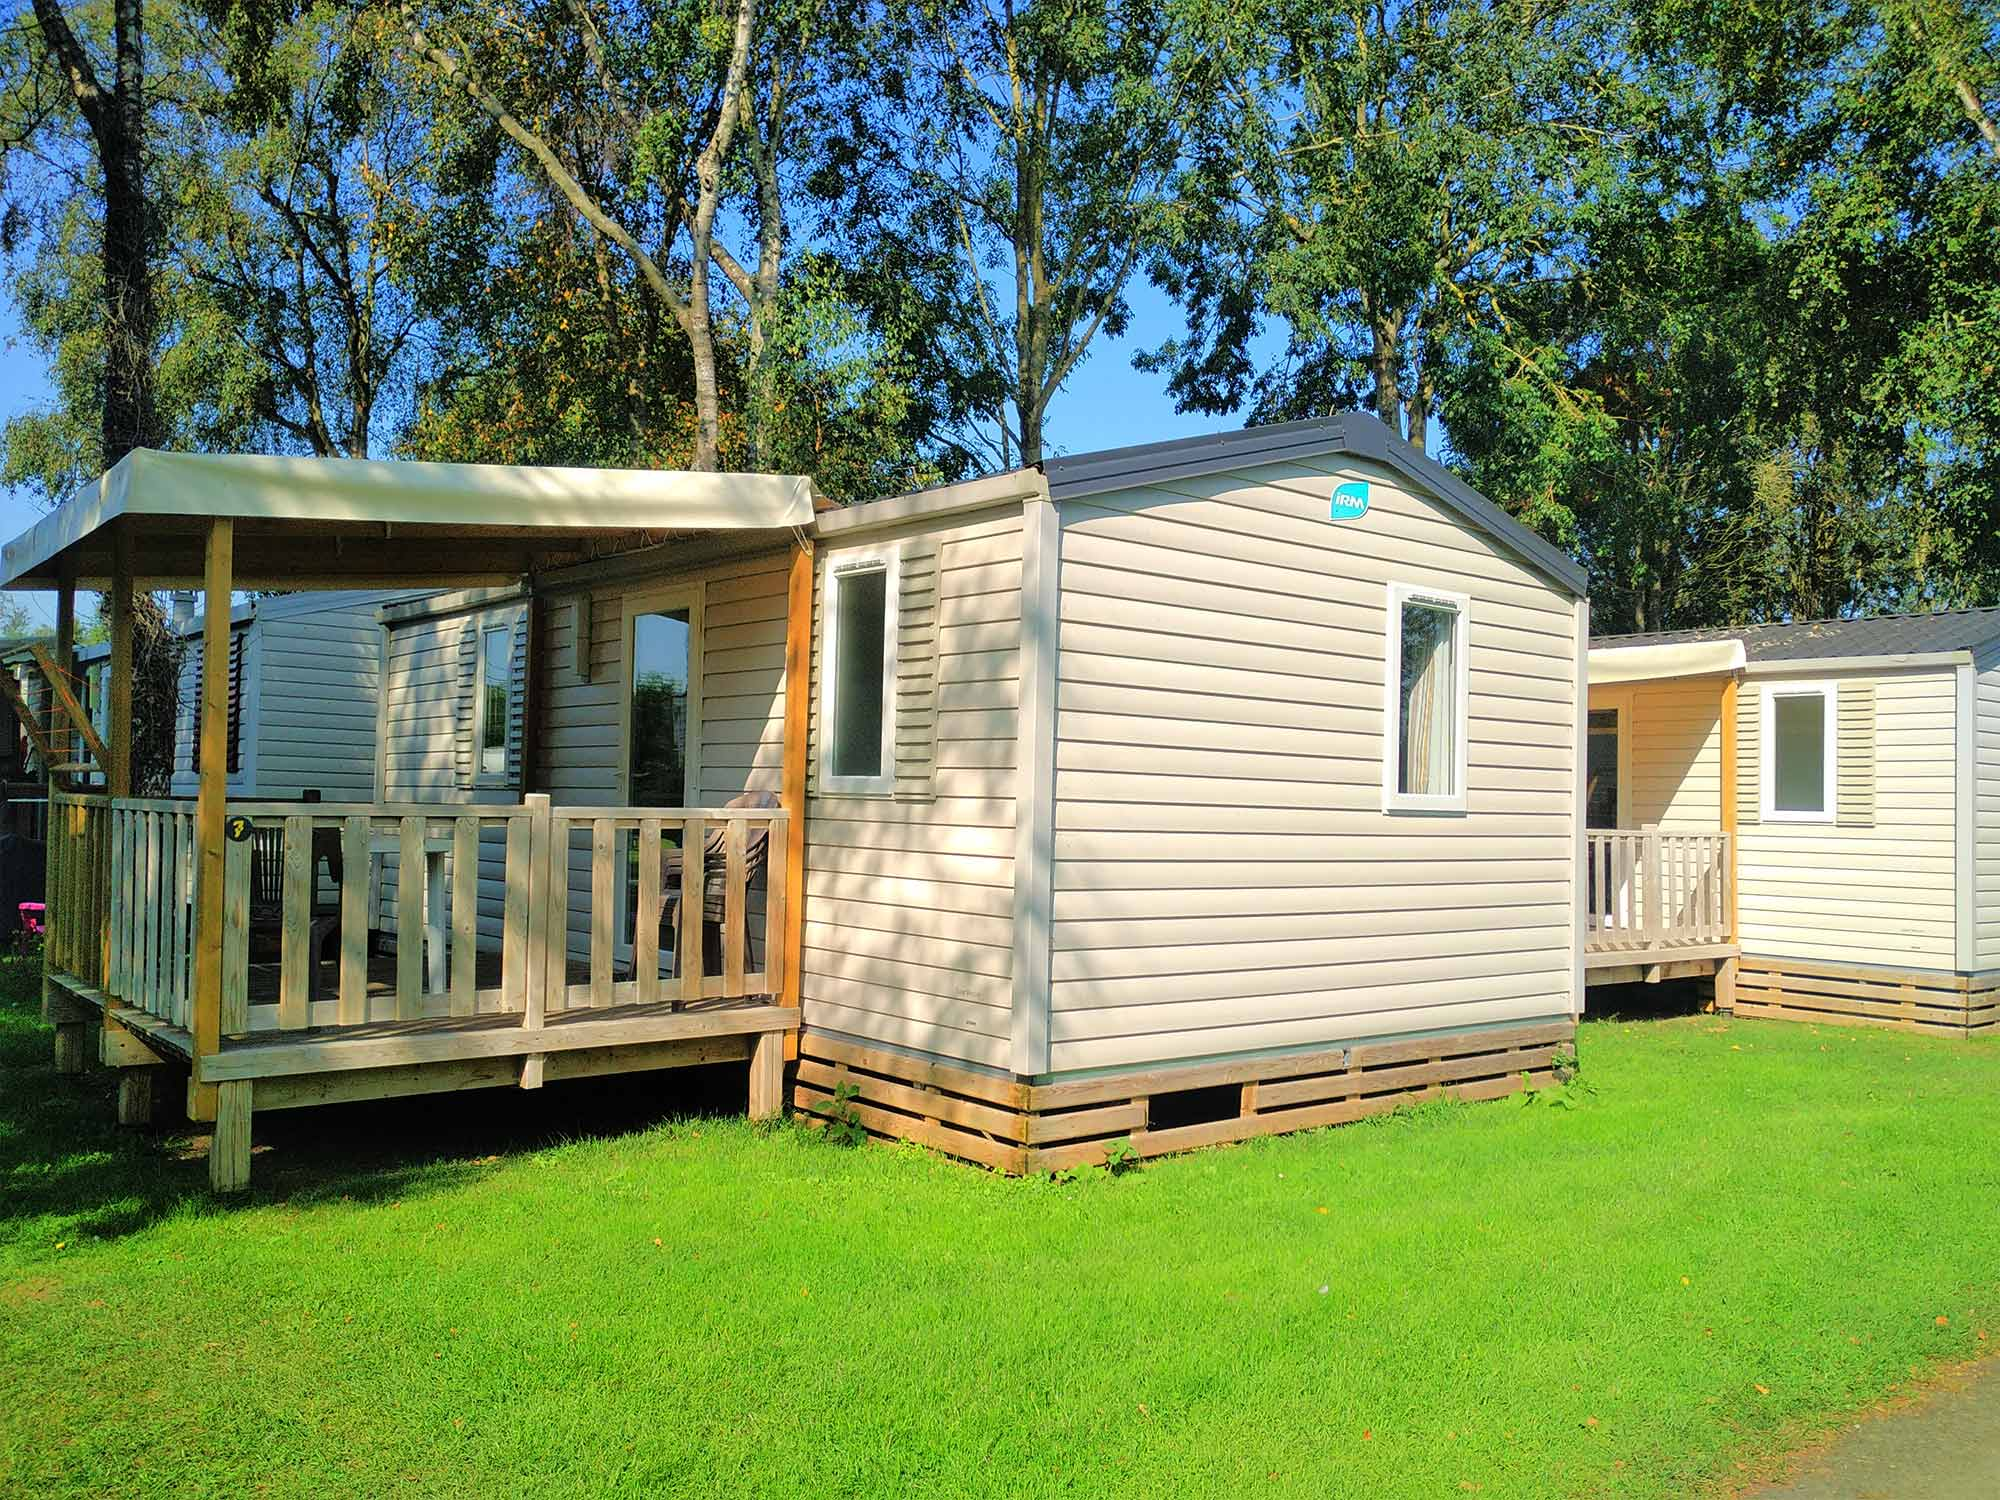 Camping l'Hypo'Camp